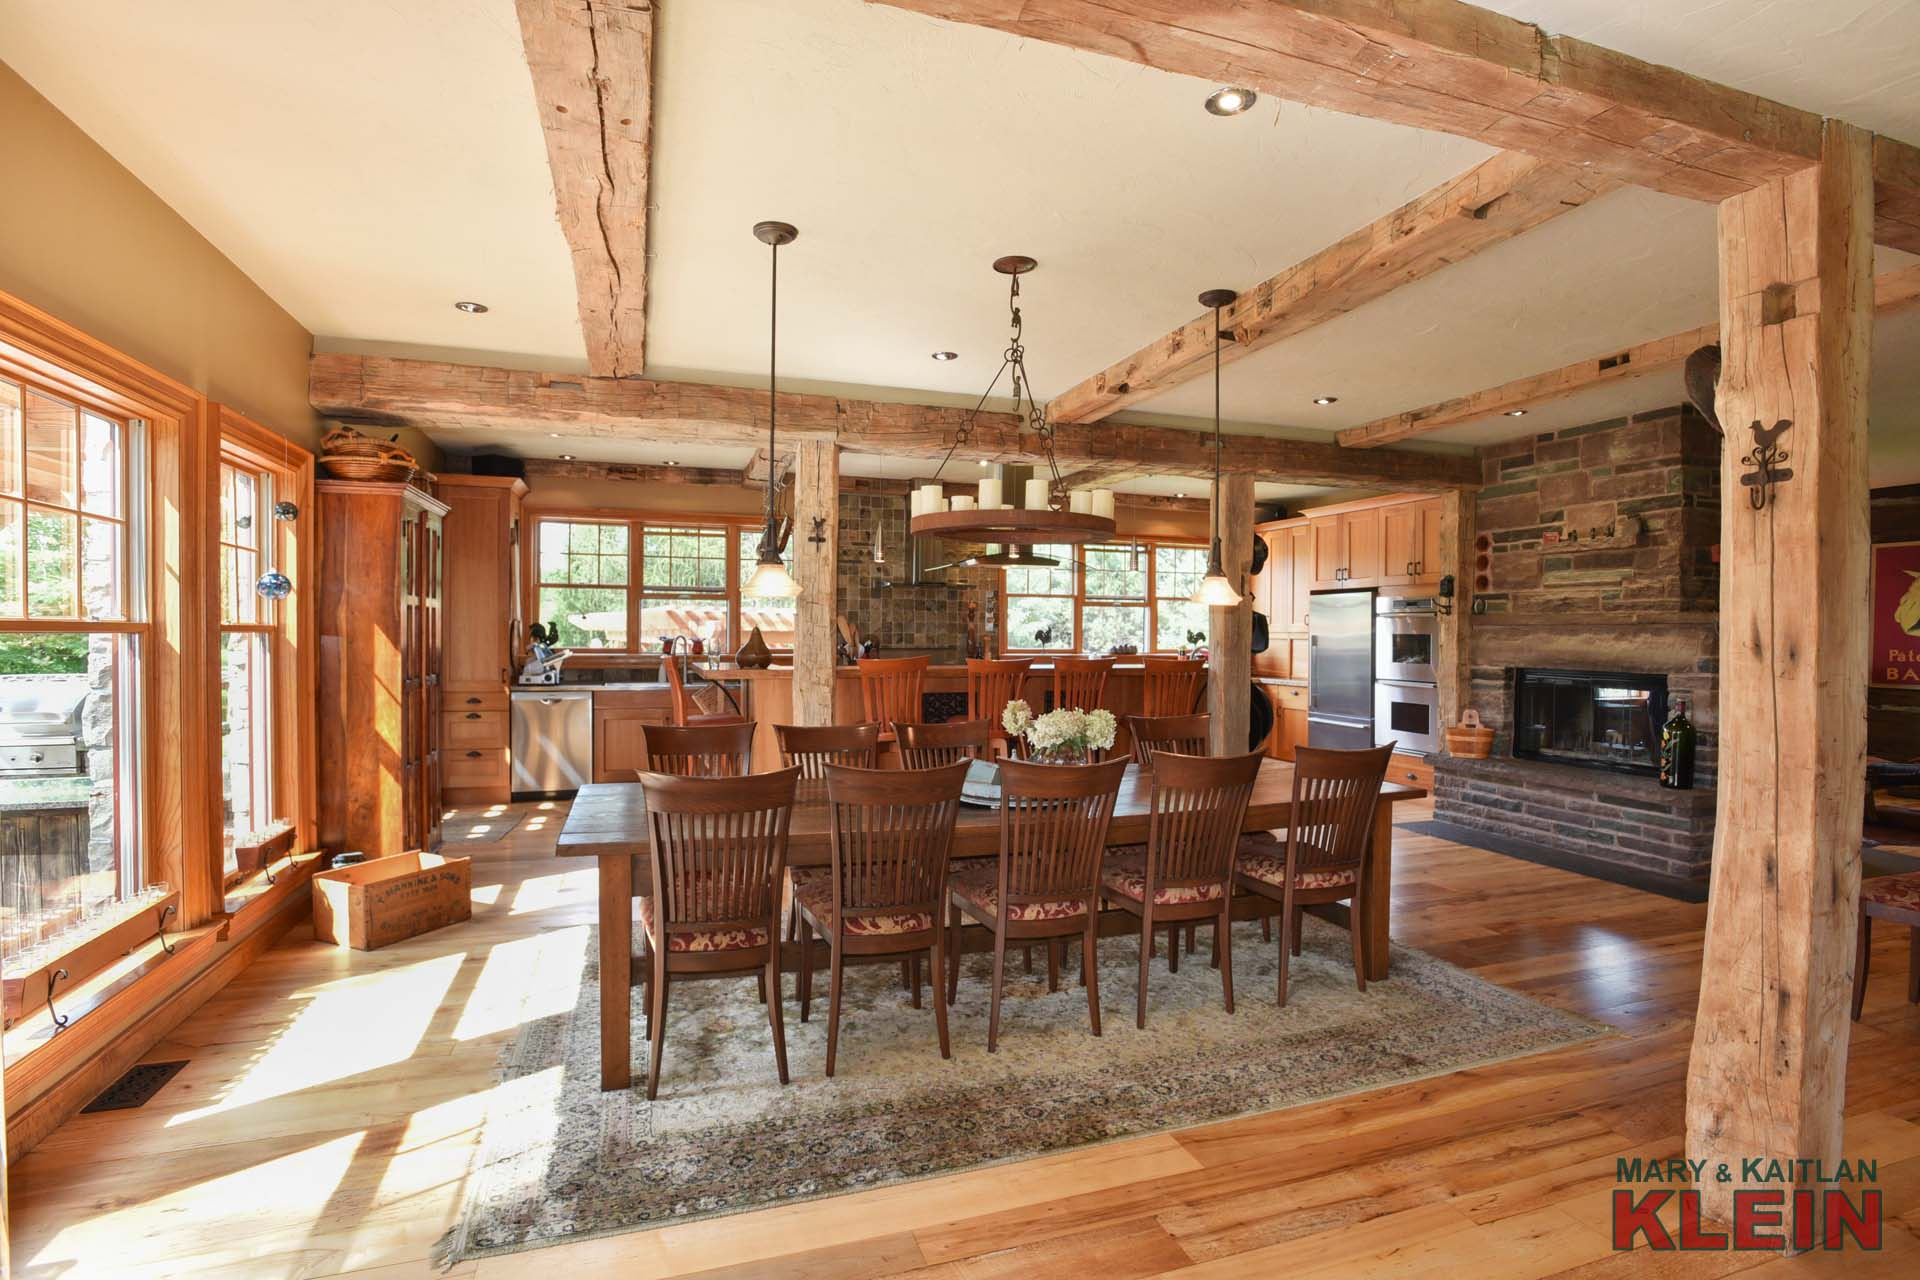 Stunning Rustic Living Space